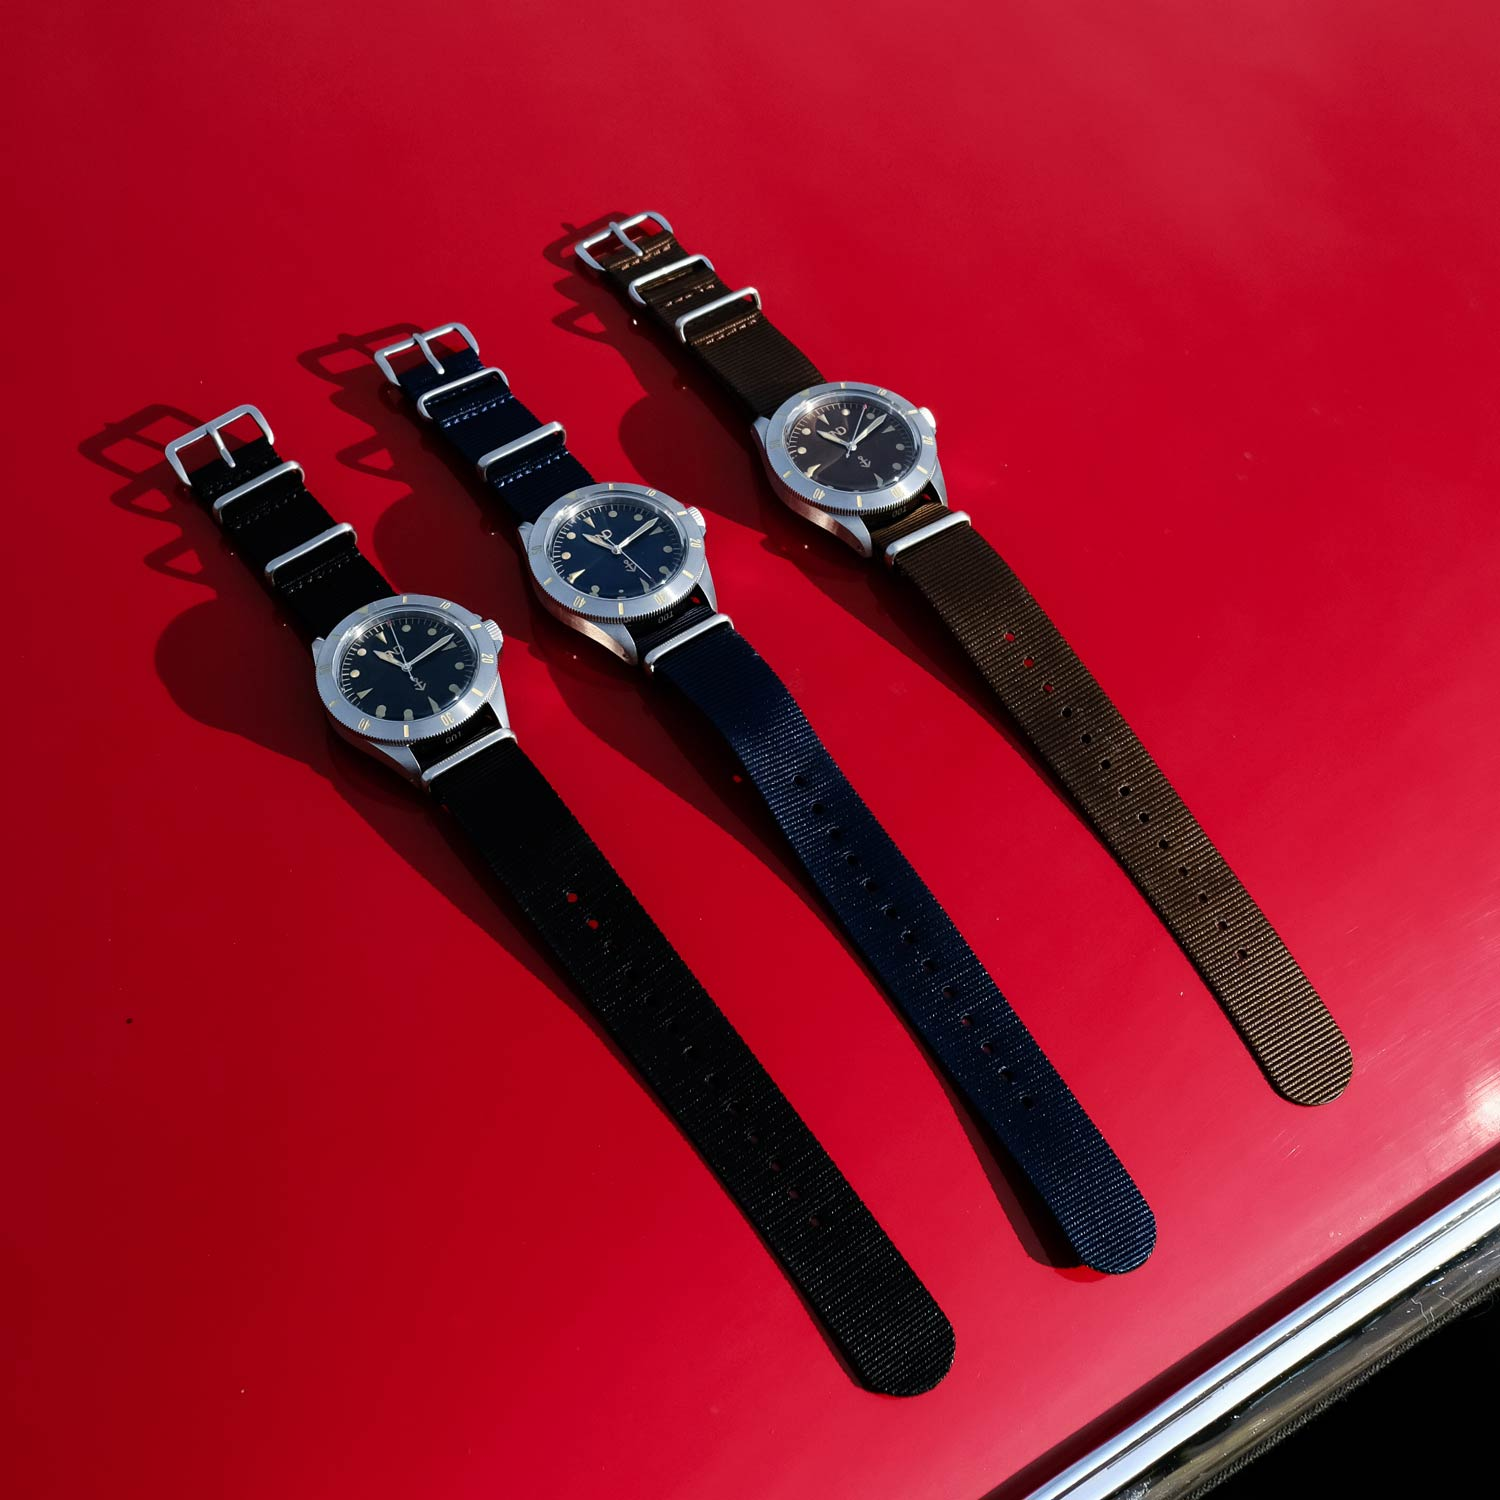 BND Watches' initial collection comprises three watches, each available in a numbered and limited edition of 150 pieces.